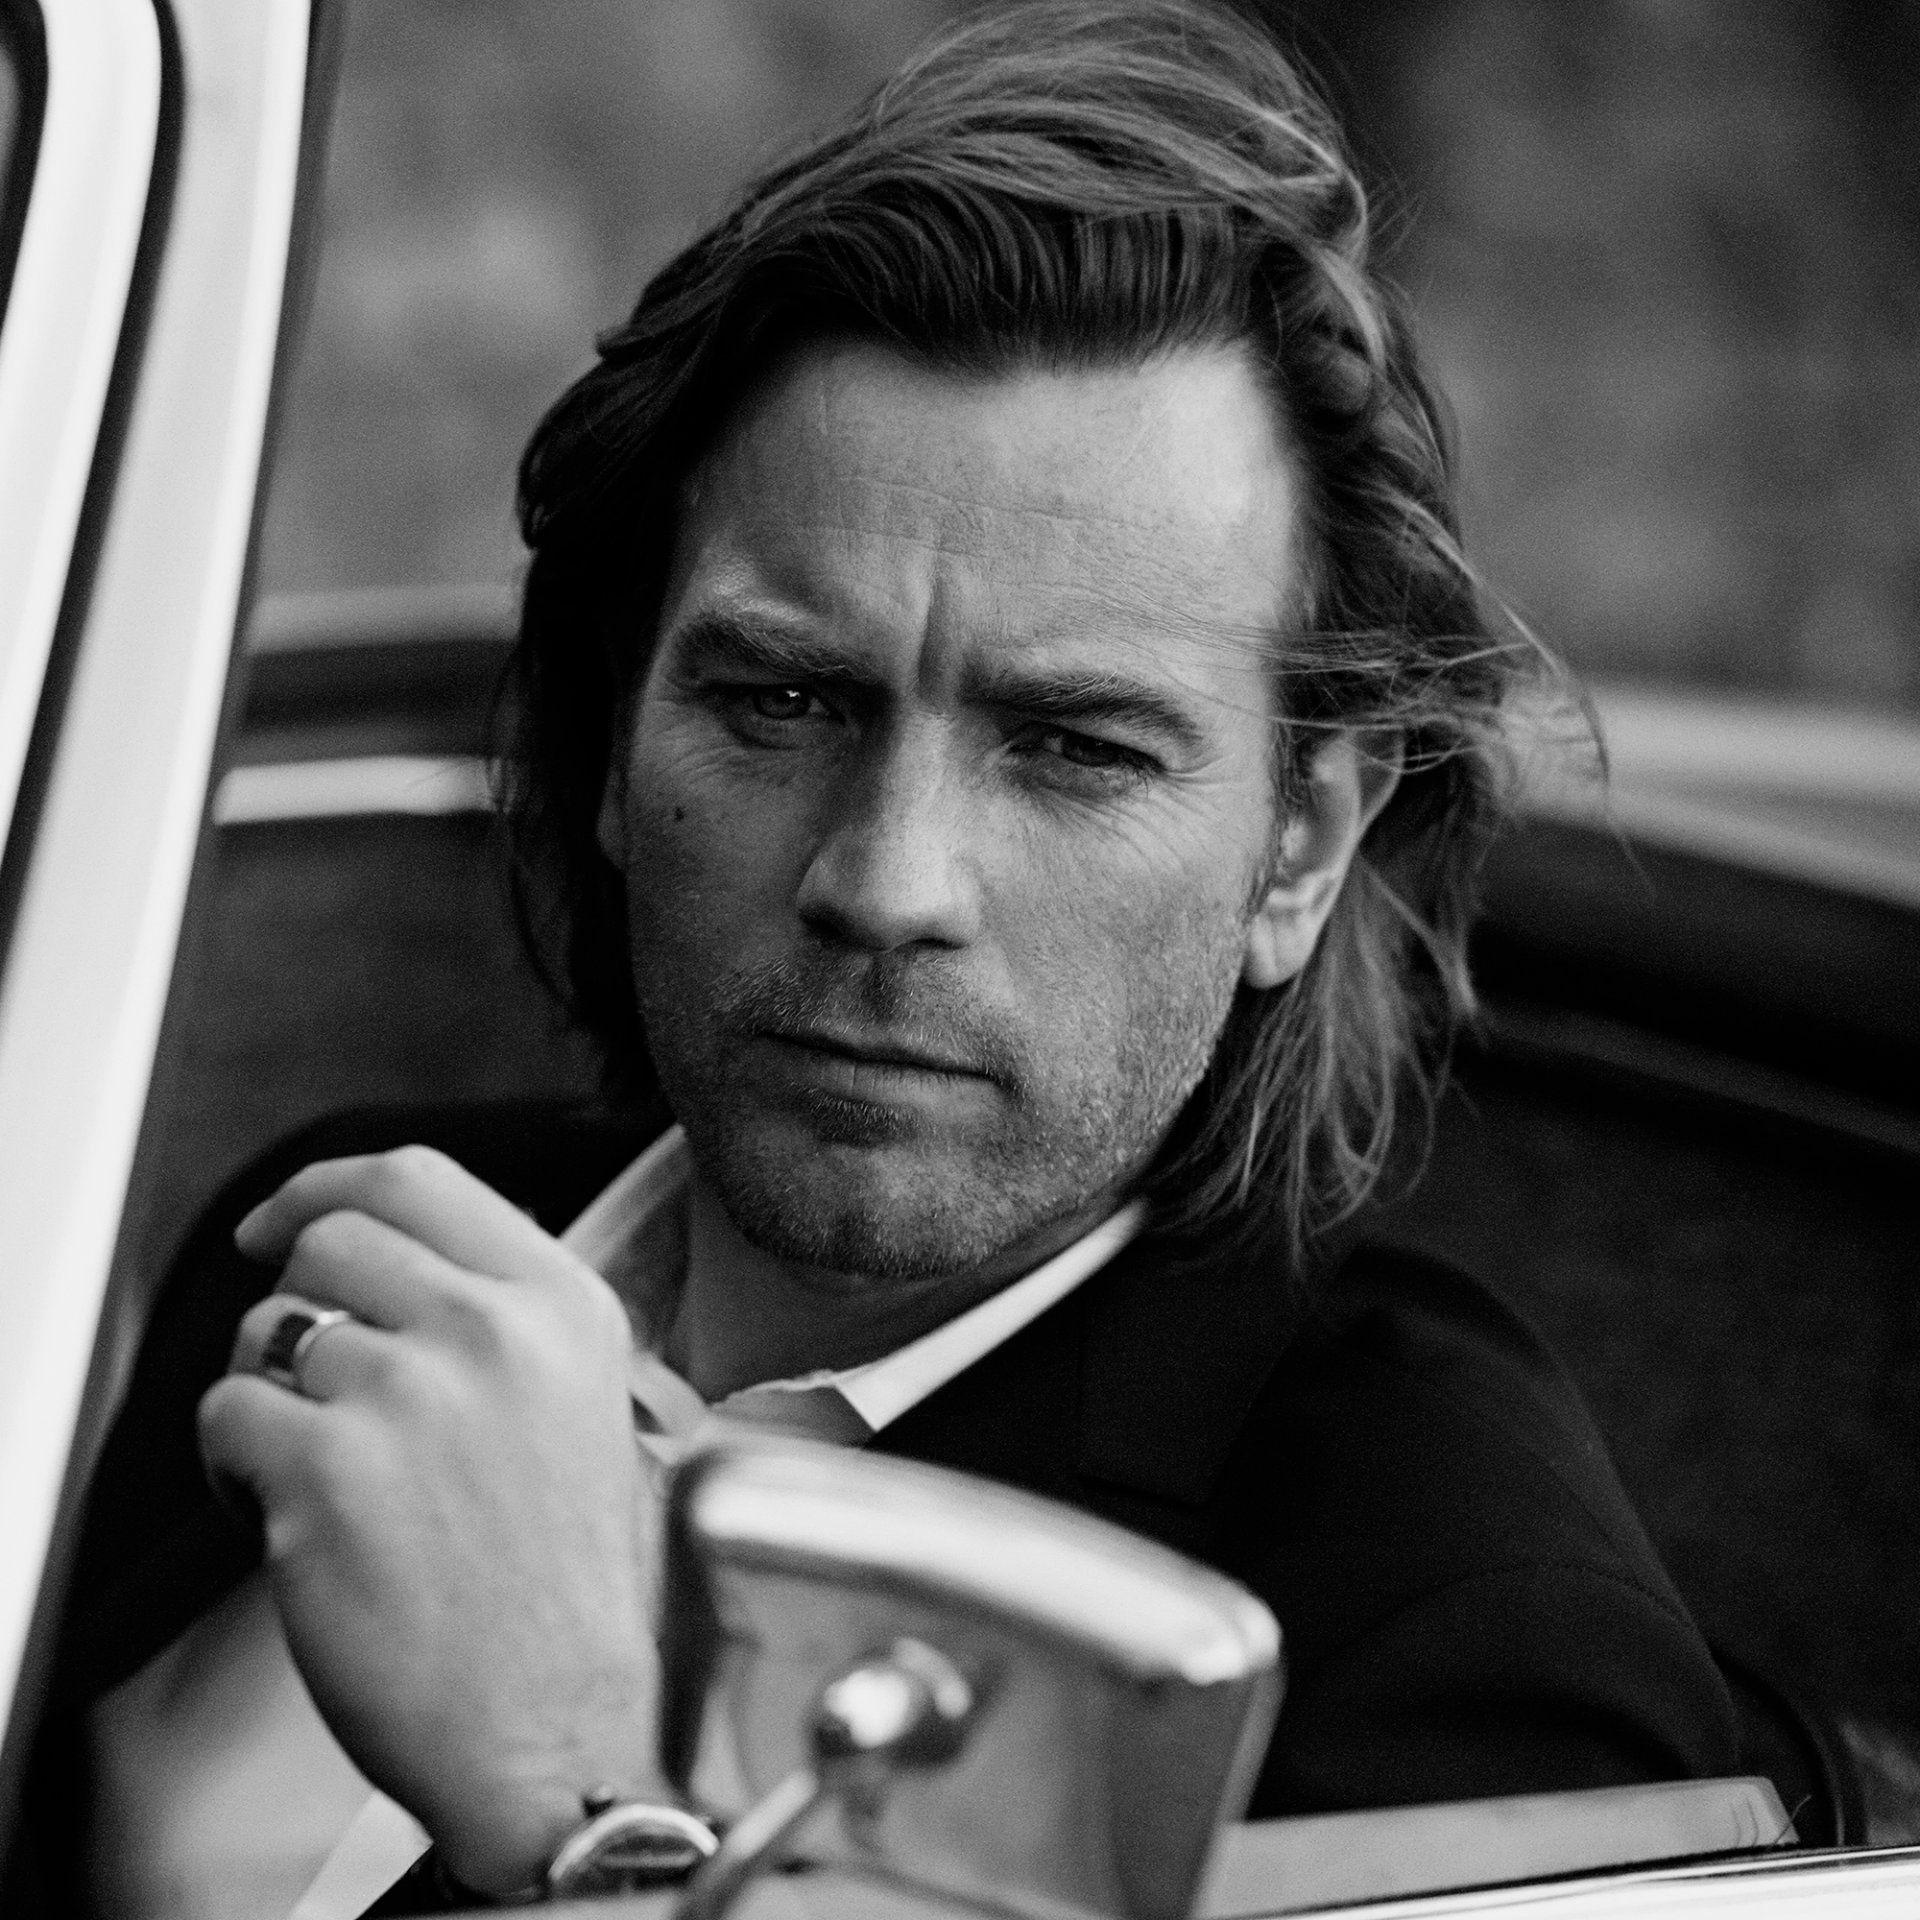 ewan mcgregor photoshoot for the company iwc schaffhausen HD wallpapers